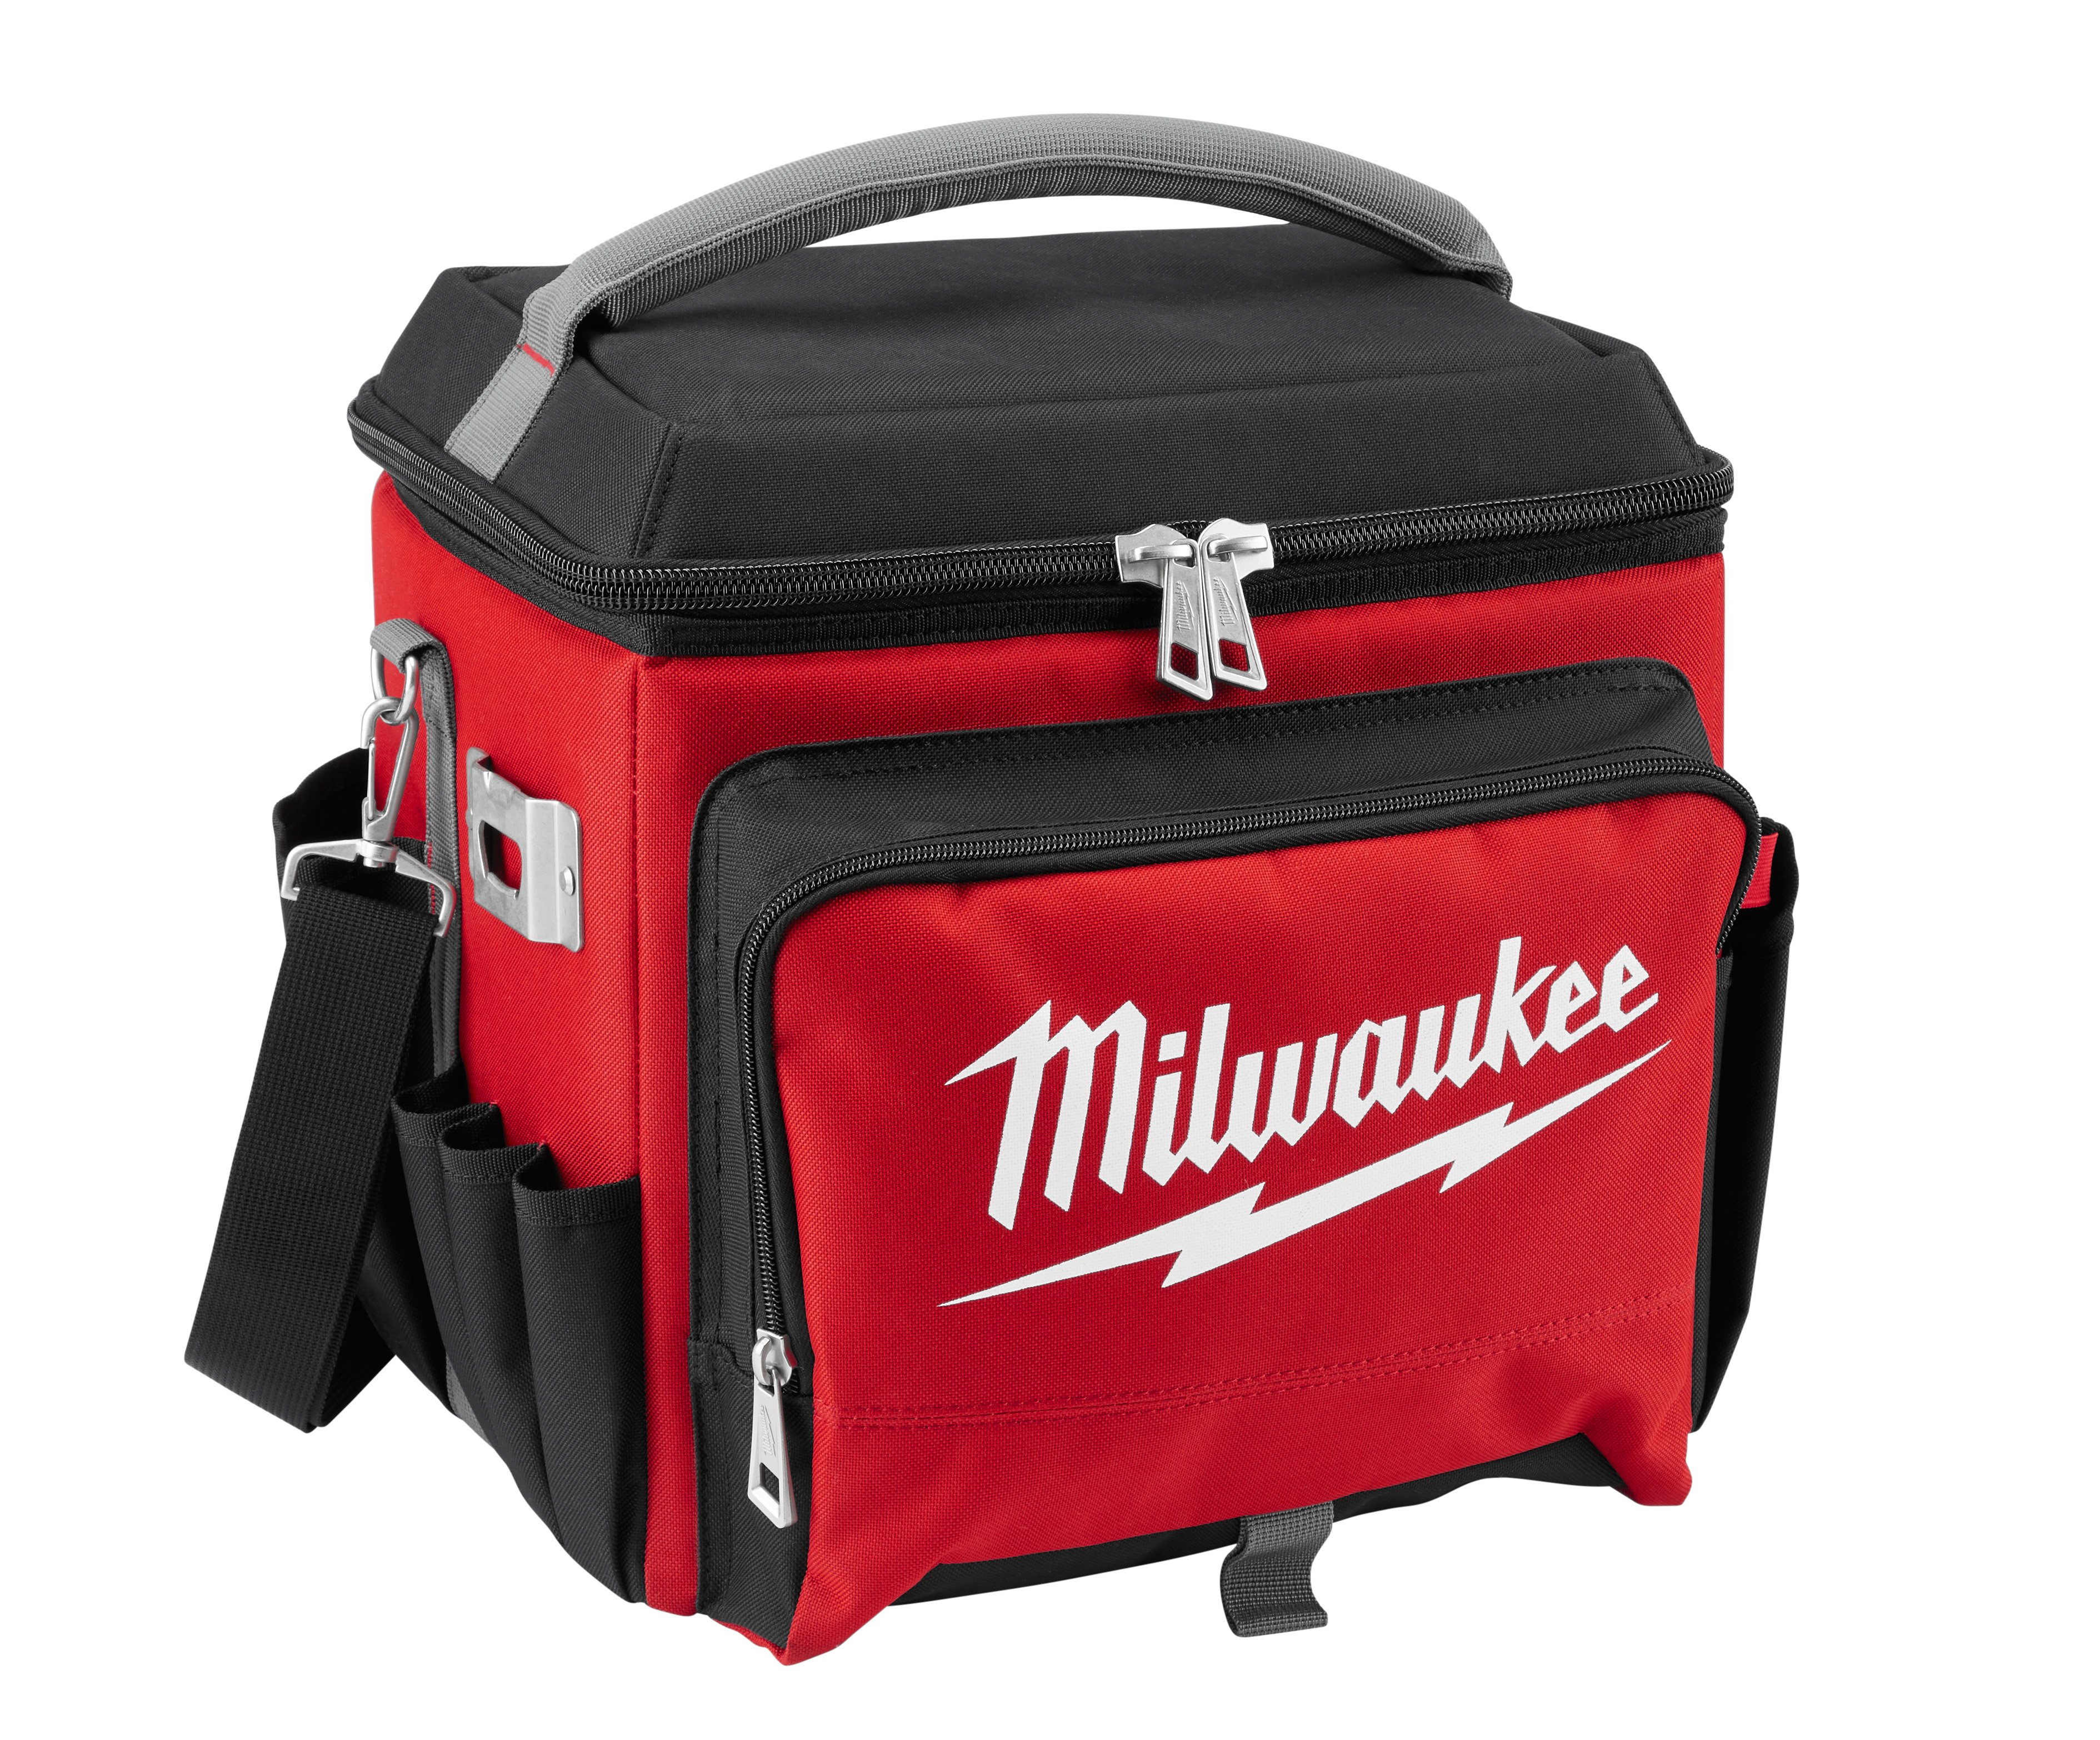 Milwaukee® 48-22-8250 Jobsite Cooler, 21.65 qt, Polyester, Black/Red, 14.96 in H